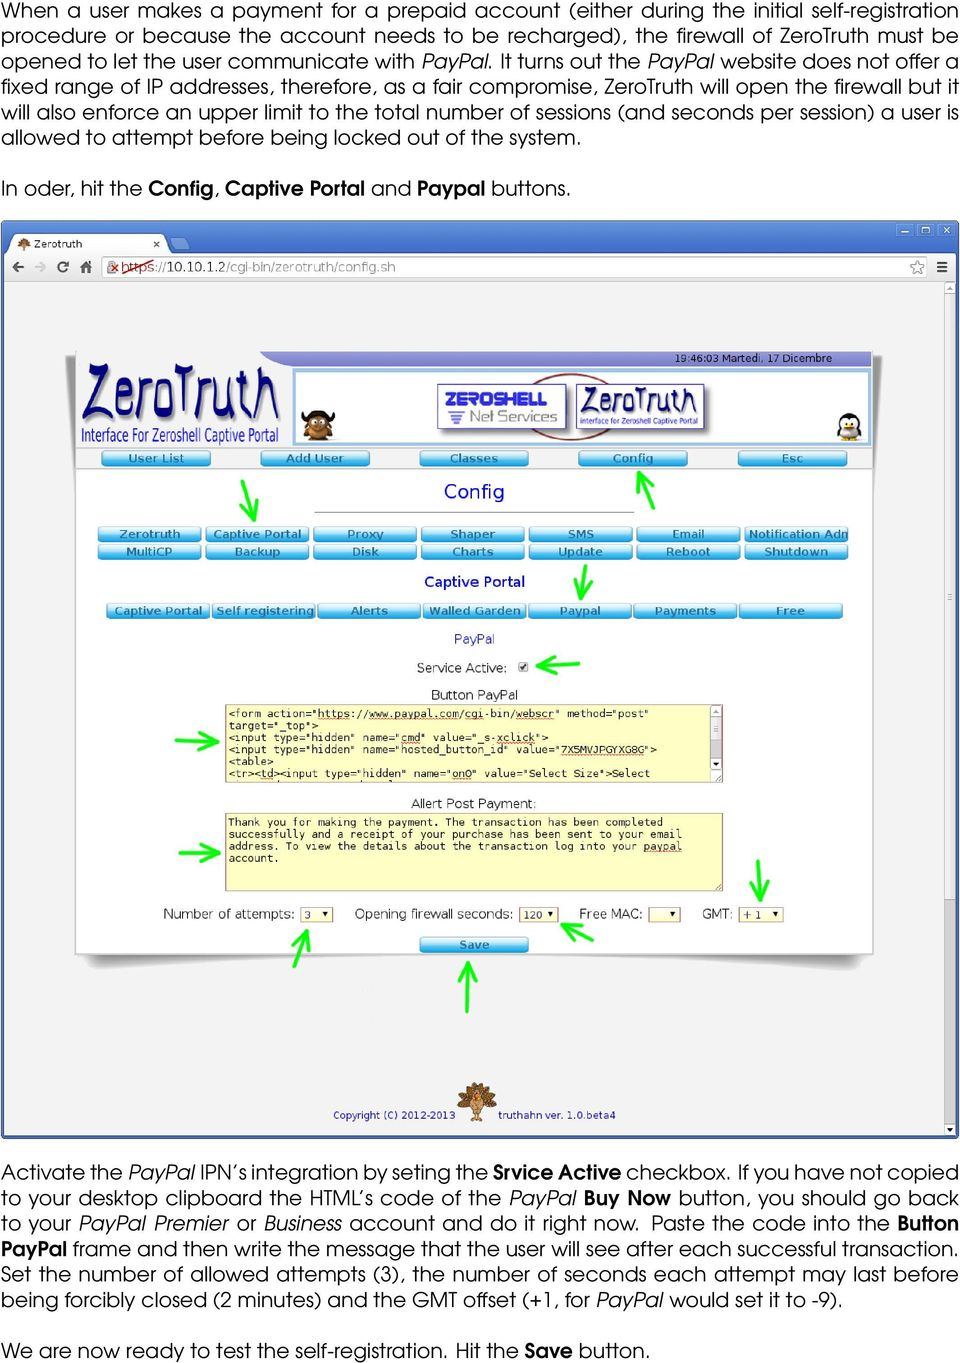 ZEROTRUTH & PAYPAL ZEROTRUTH INSTANT PAYMENT NOTIFICATION TRUTHAHN